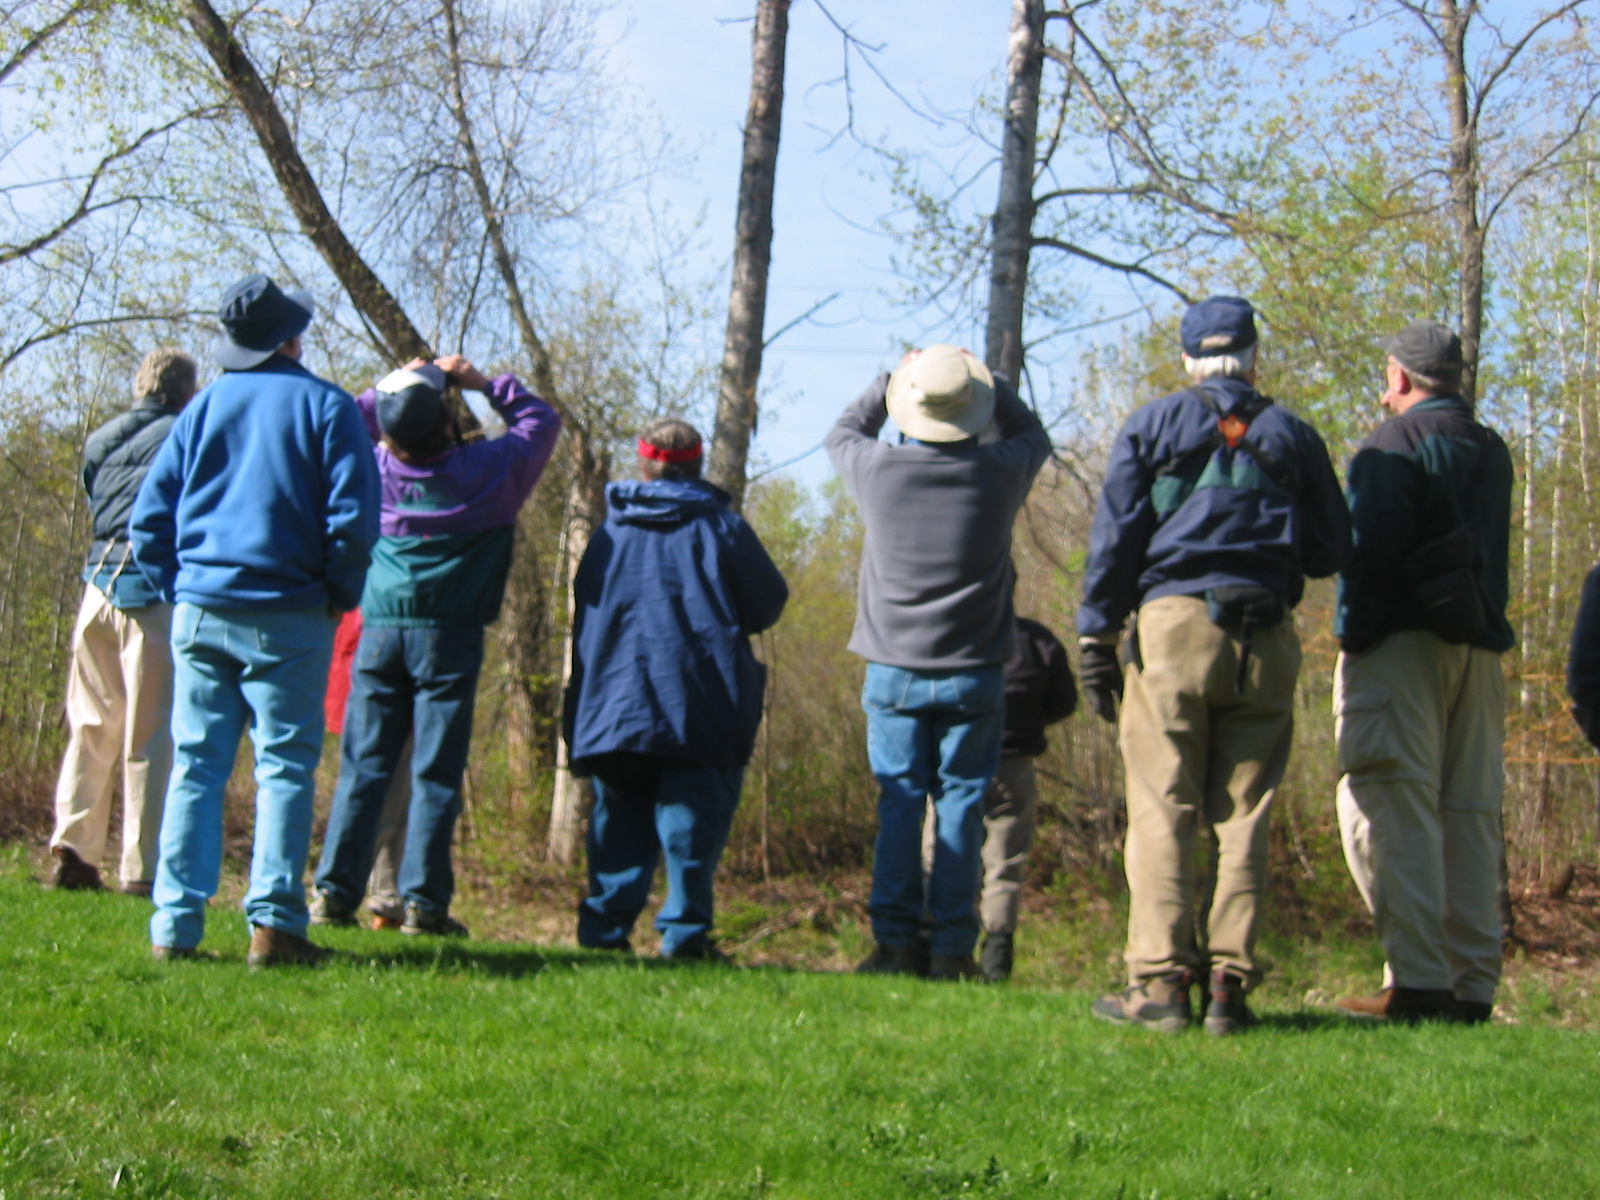 Birders in early spring, looking at trees that are not fully leafed out.